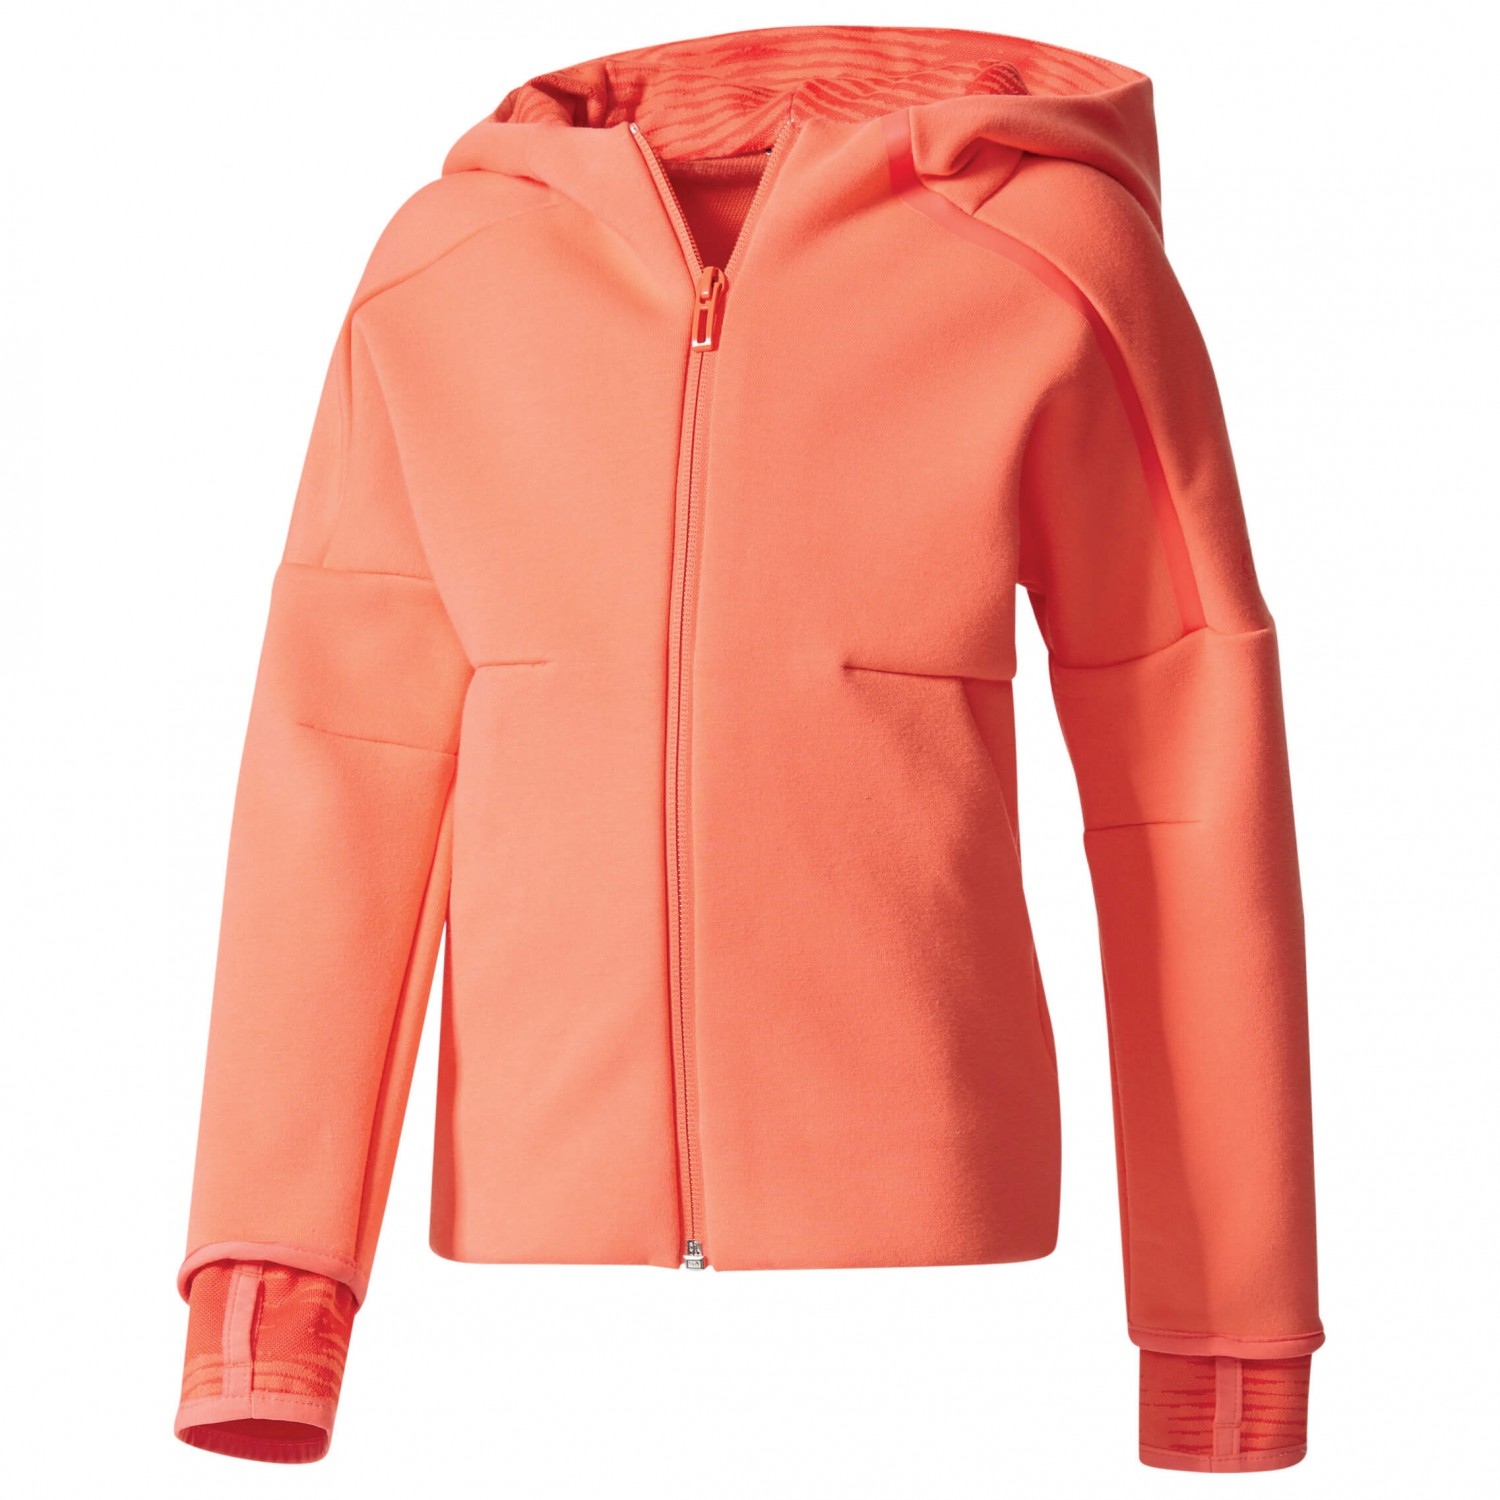 Adidas Little Zne Hoodie 2 Pulse Fleece Jacket Girls Buy Online